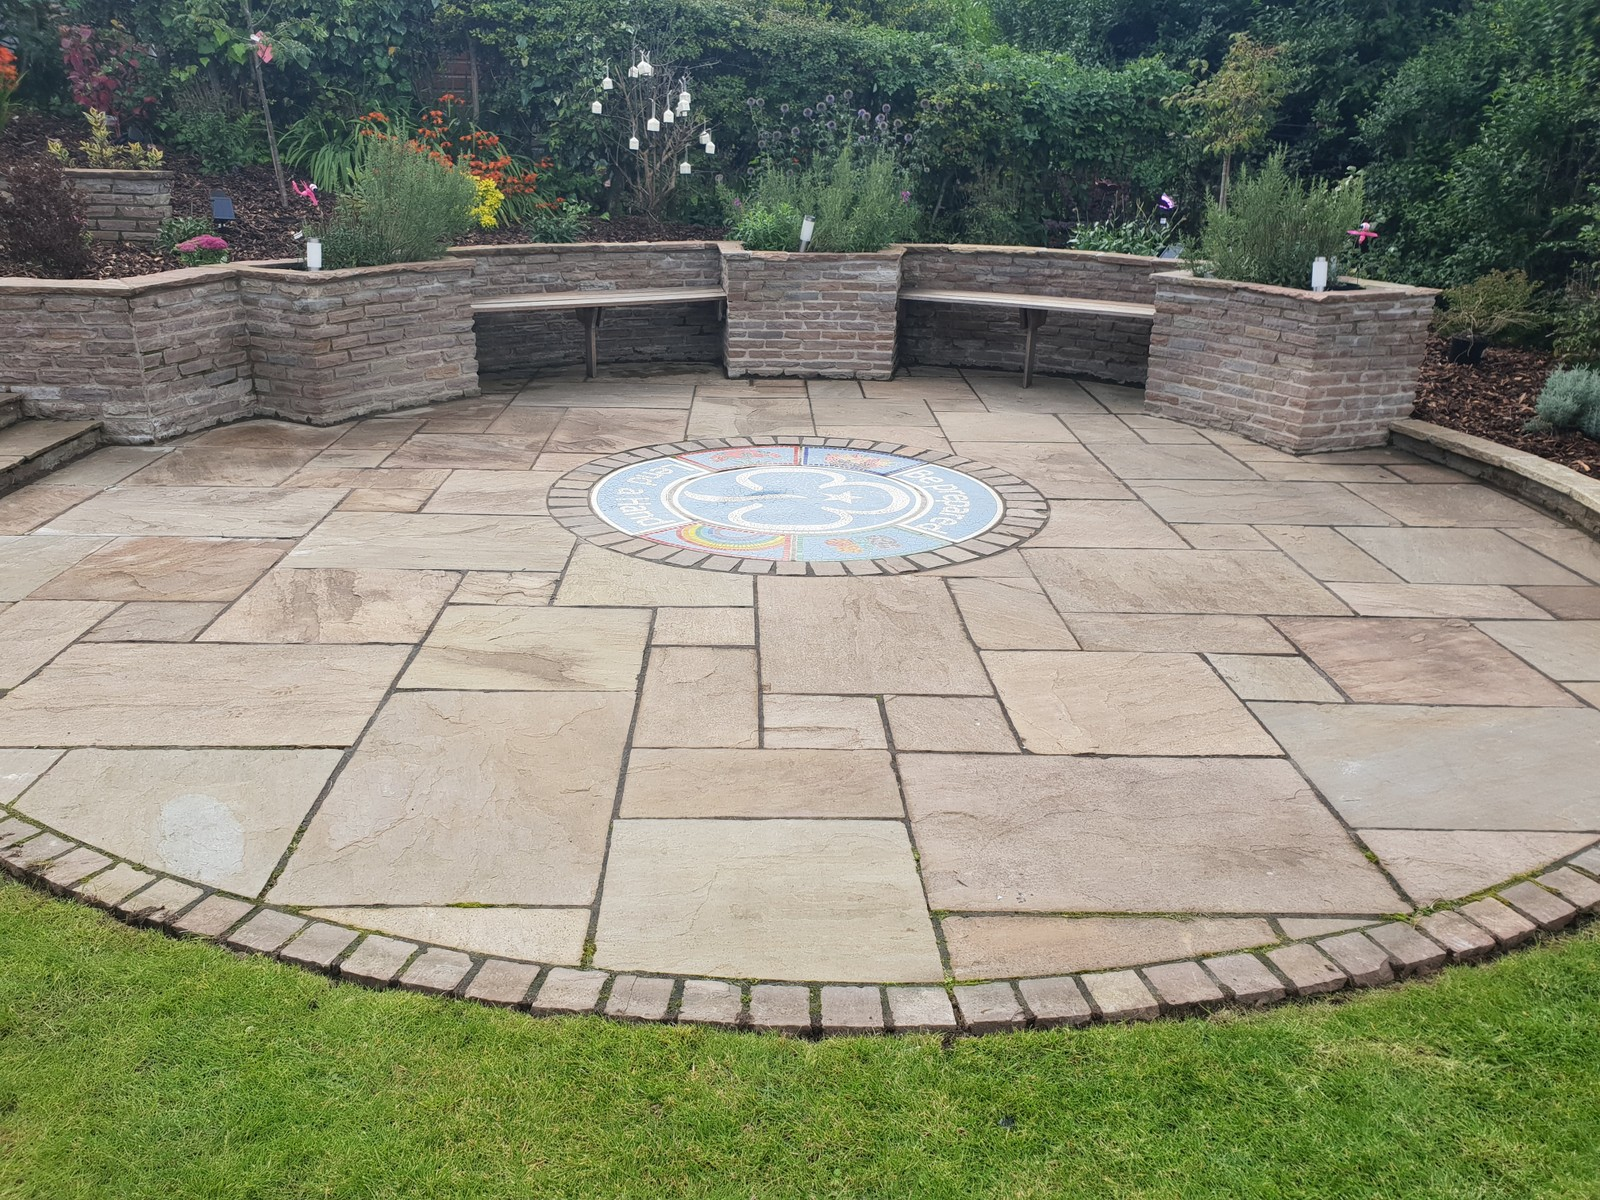 Sandstone patio with inset mosaic